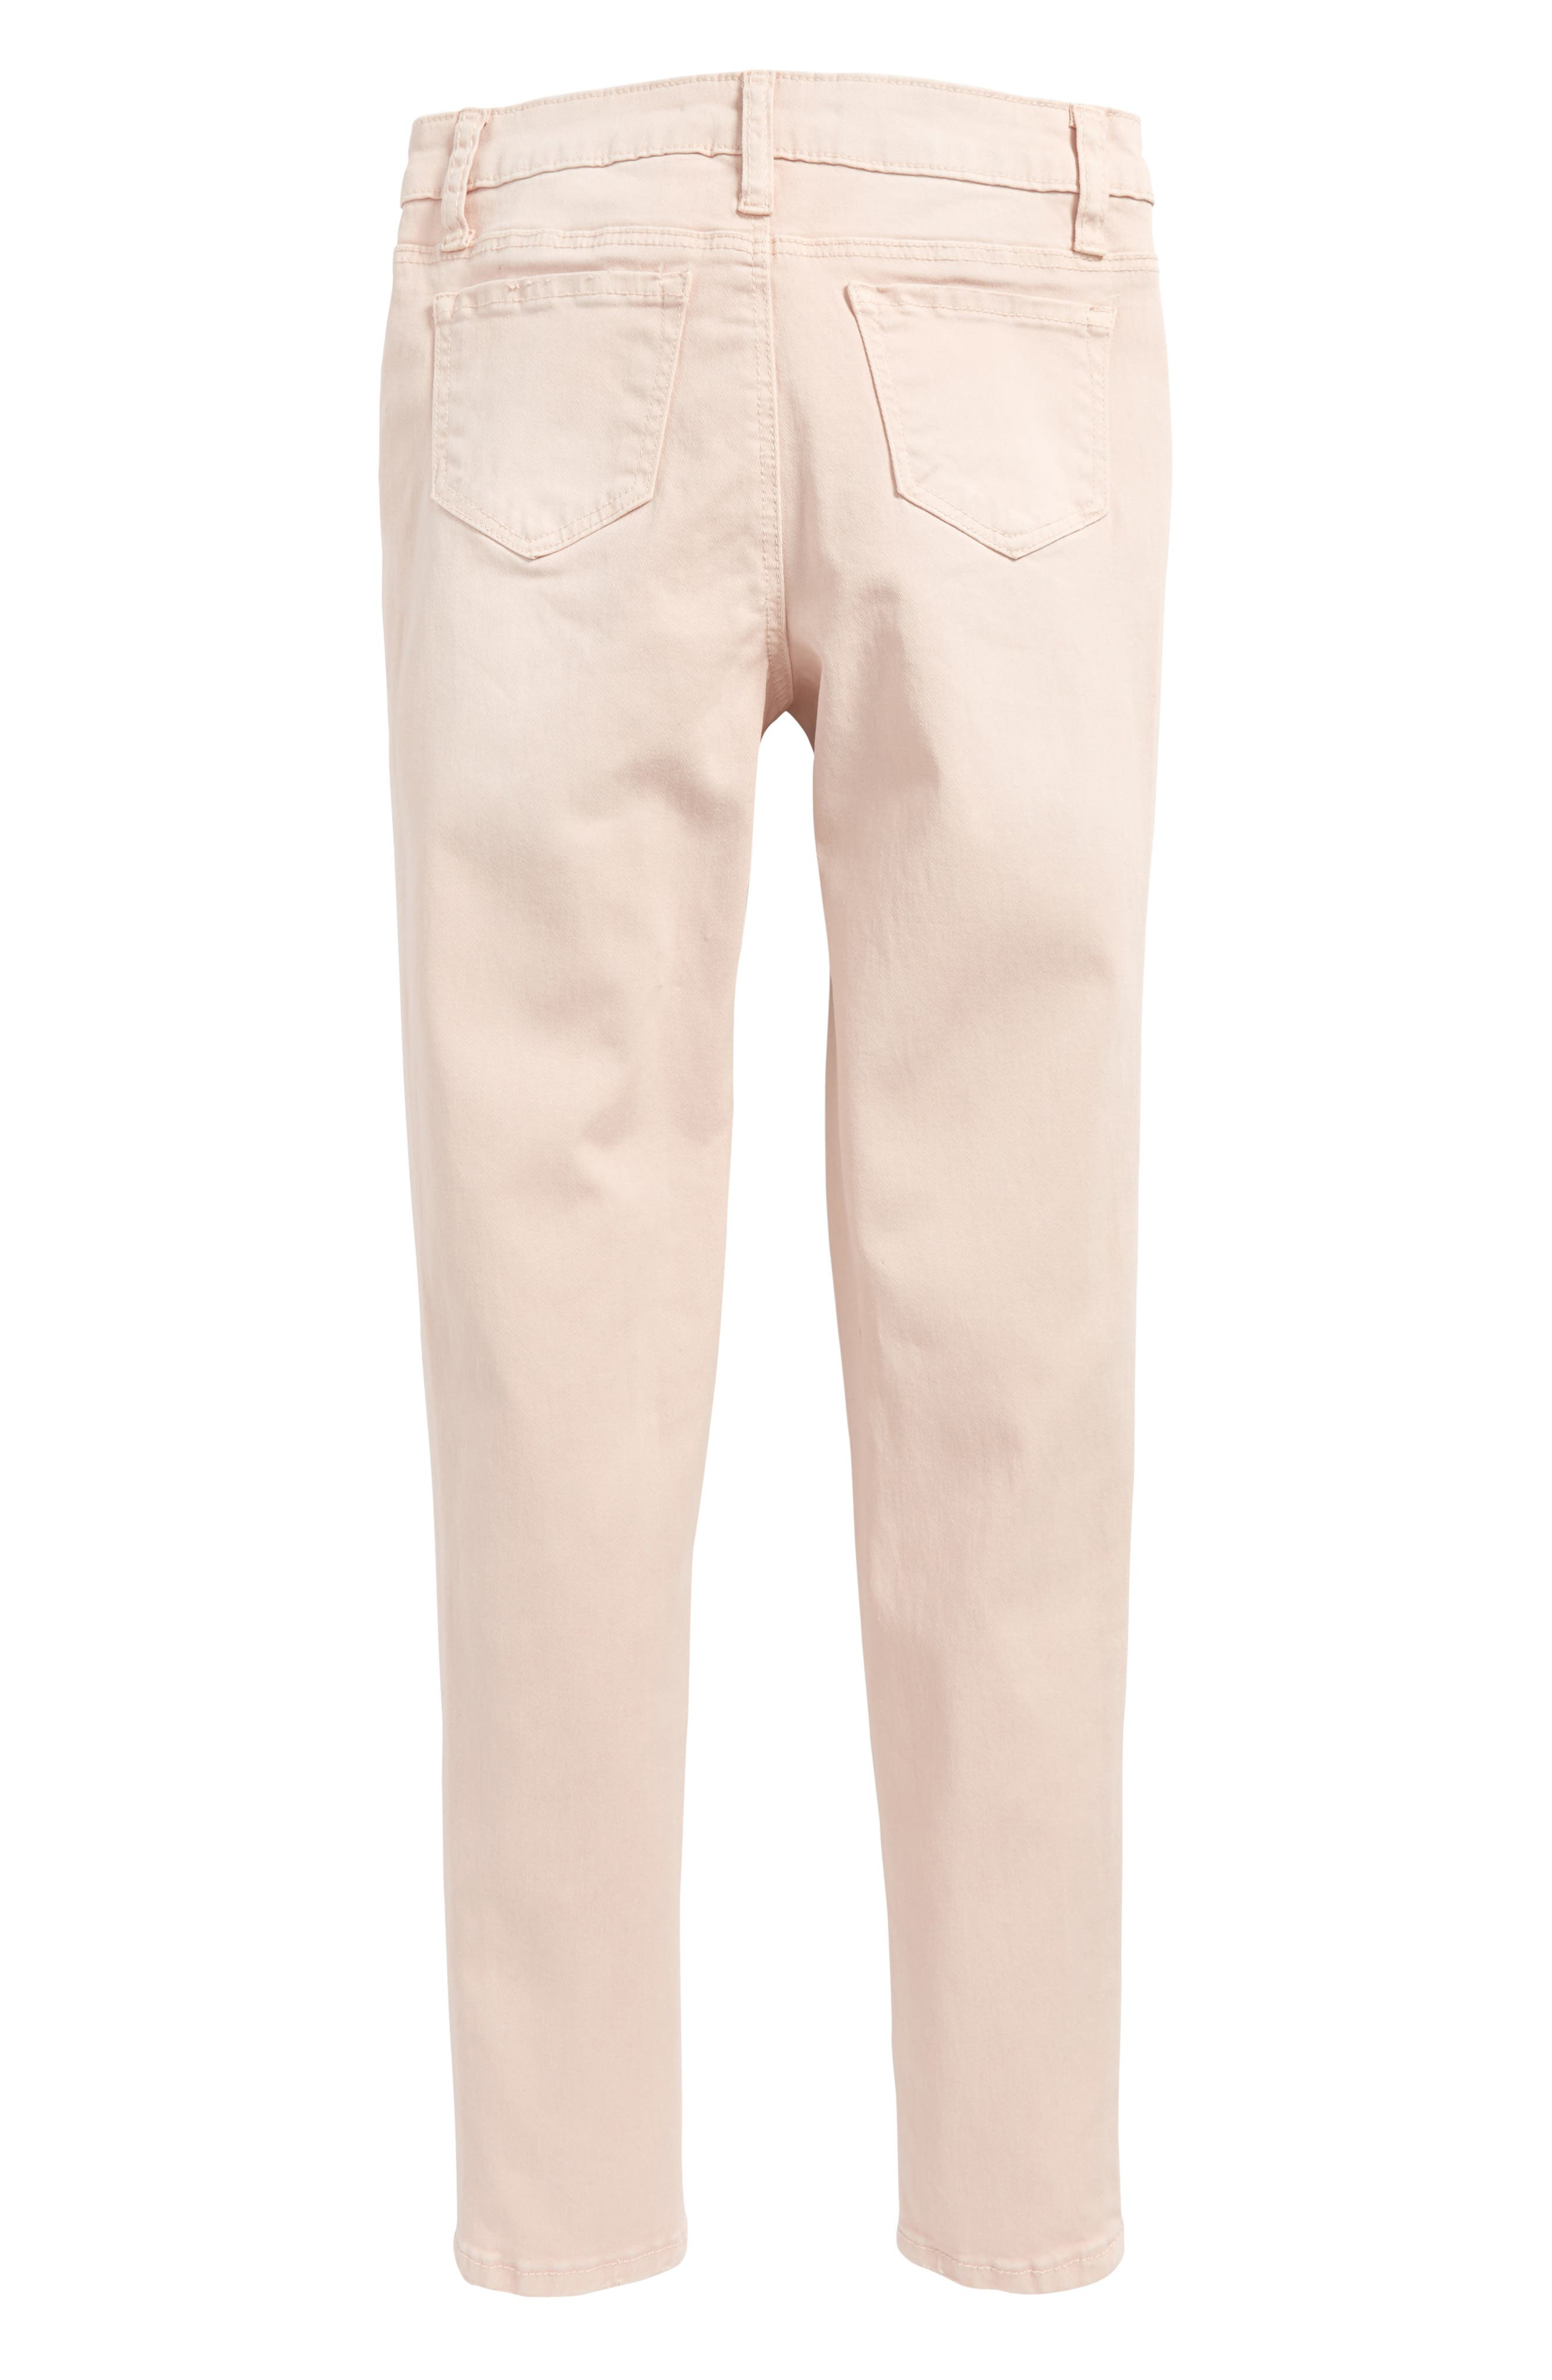 Colored Ankle Jeans,                             Alternate thumbnail 3, color,                             Pink Pixie Wash